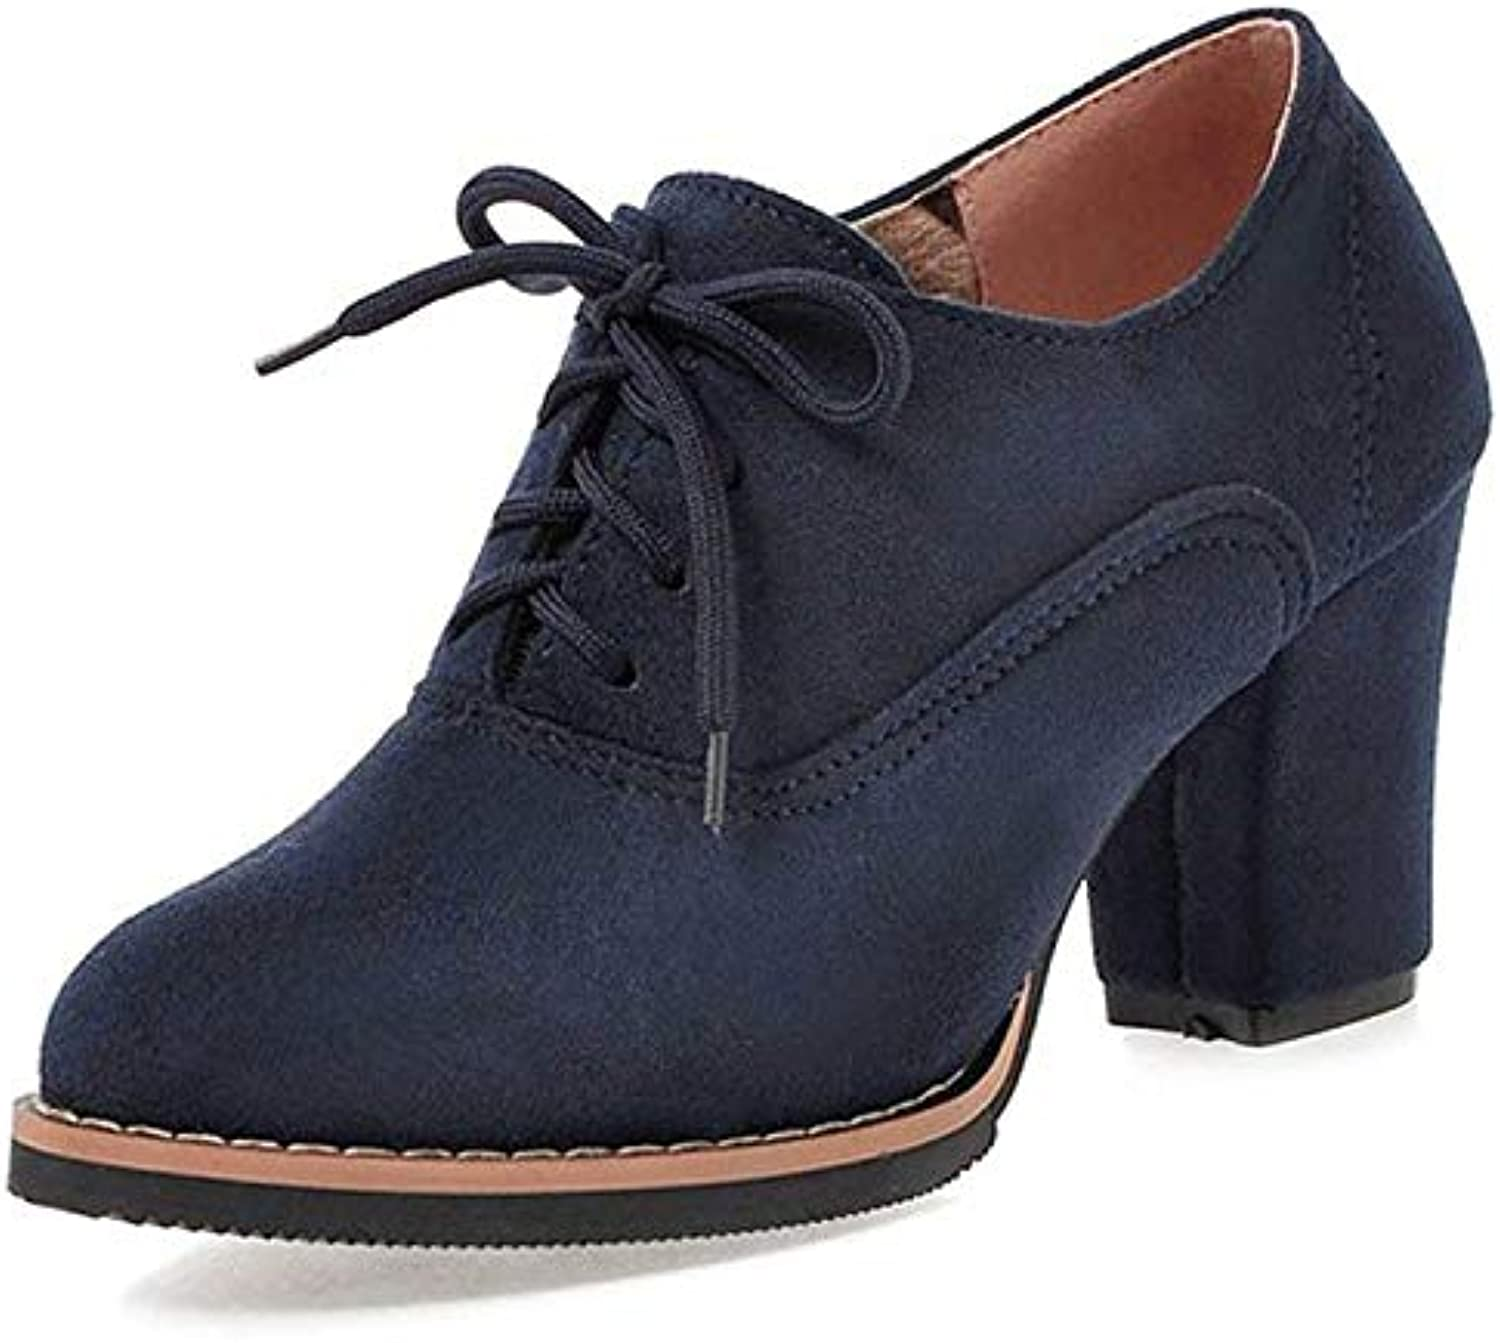 Lace up Boots Women Chunky Heel Large Size Brogue Faux Suede shoes (color   bluee, Size   CA 12)